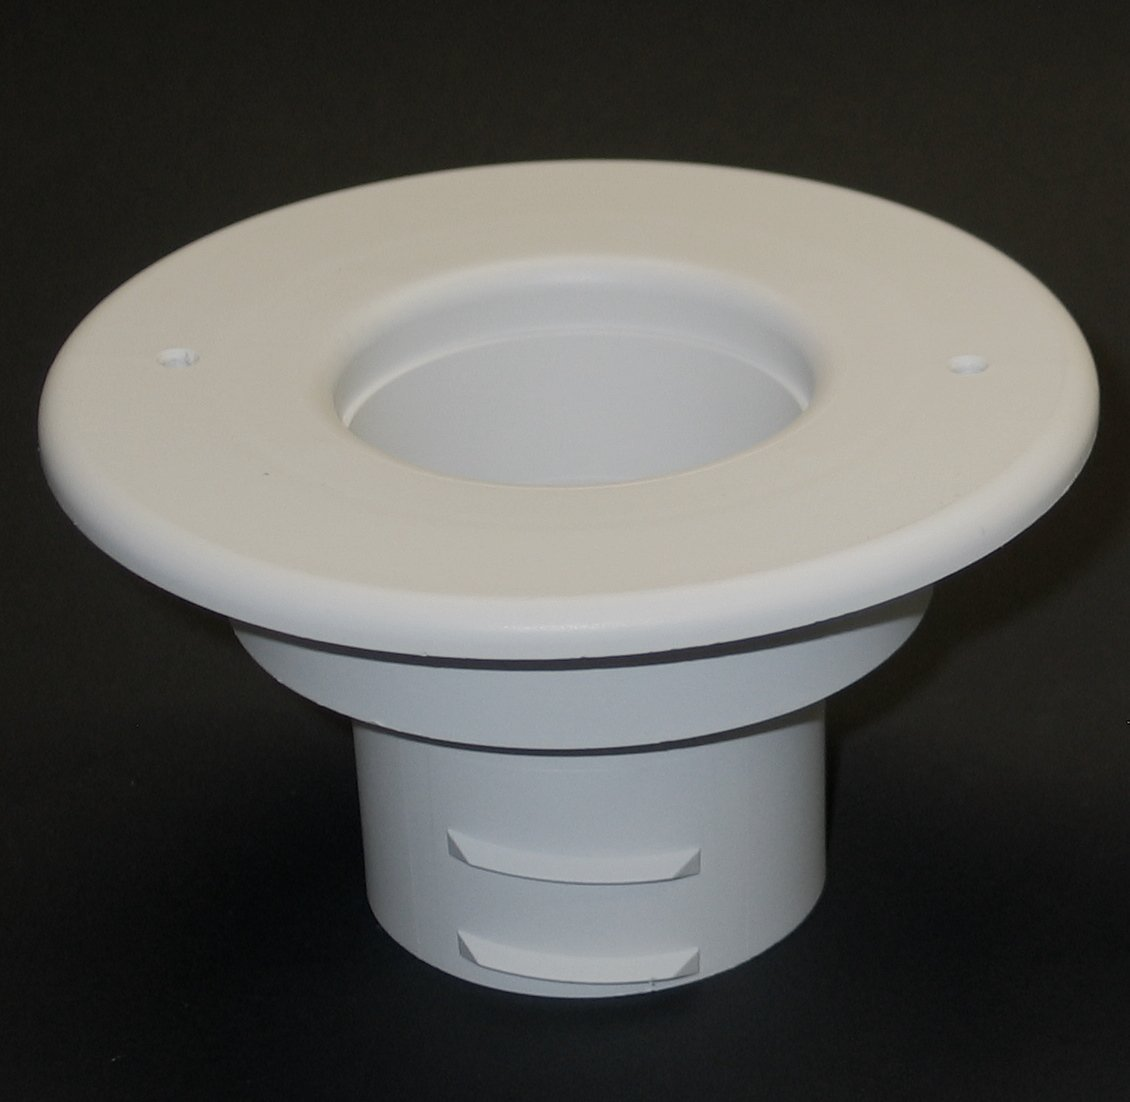 "Round Supply Outlet, 2.5"", White plastic"